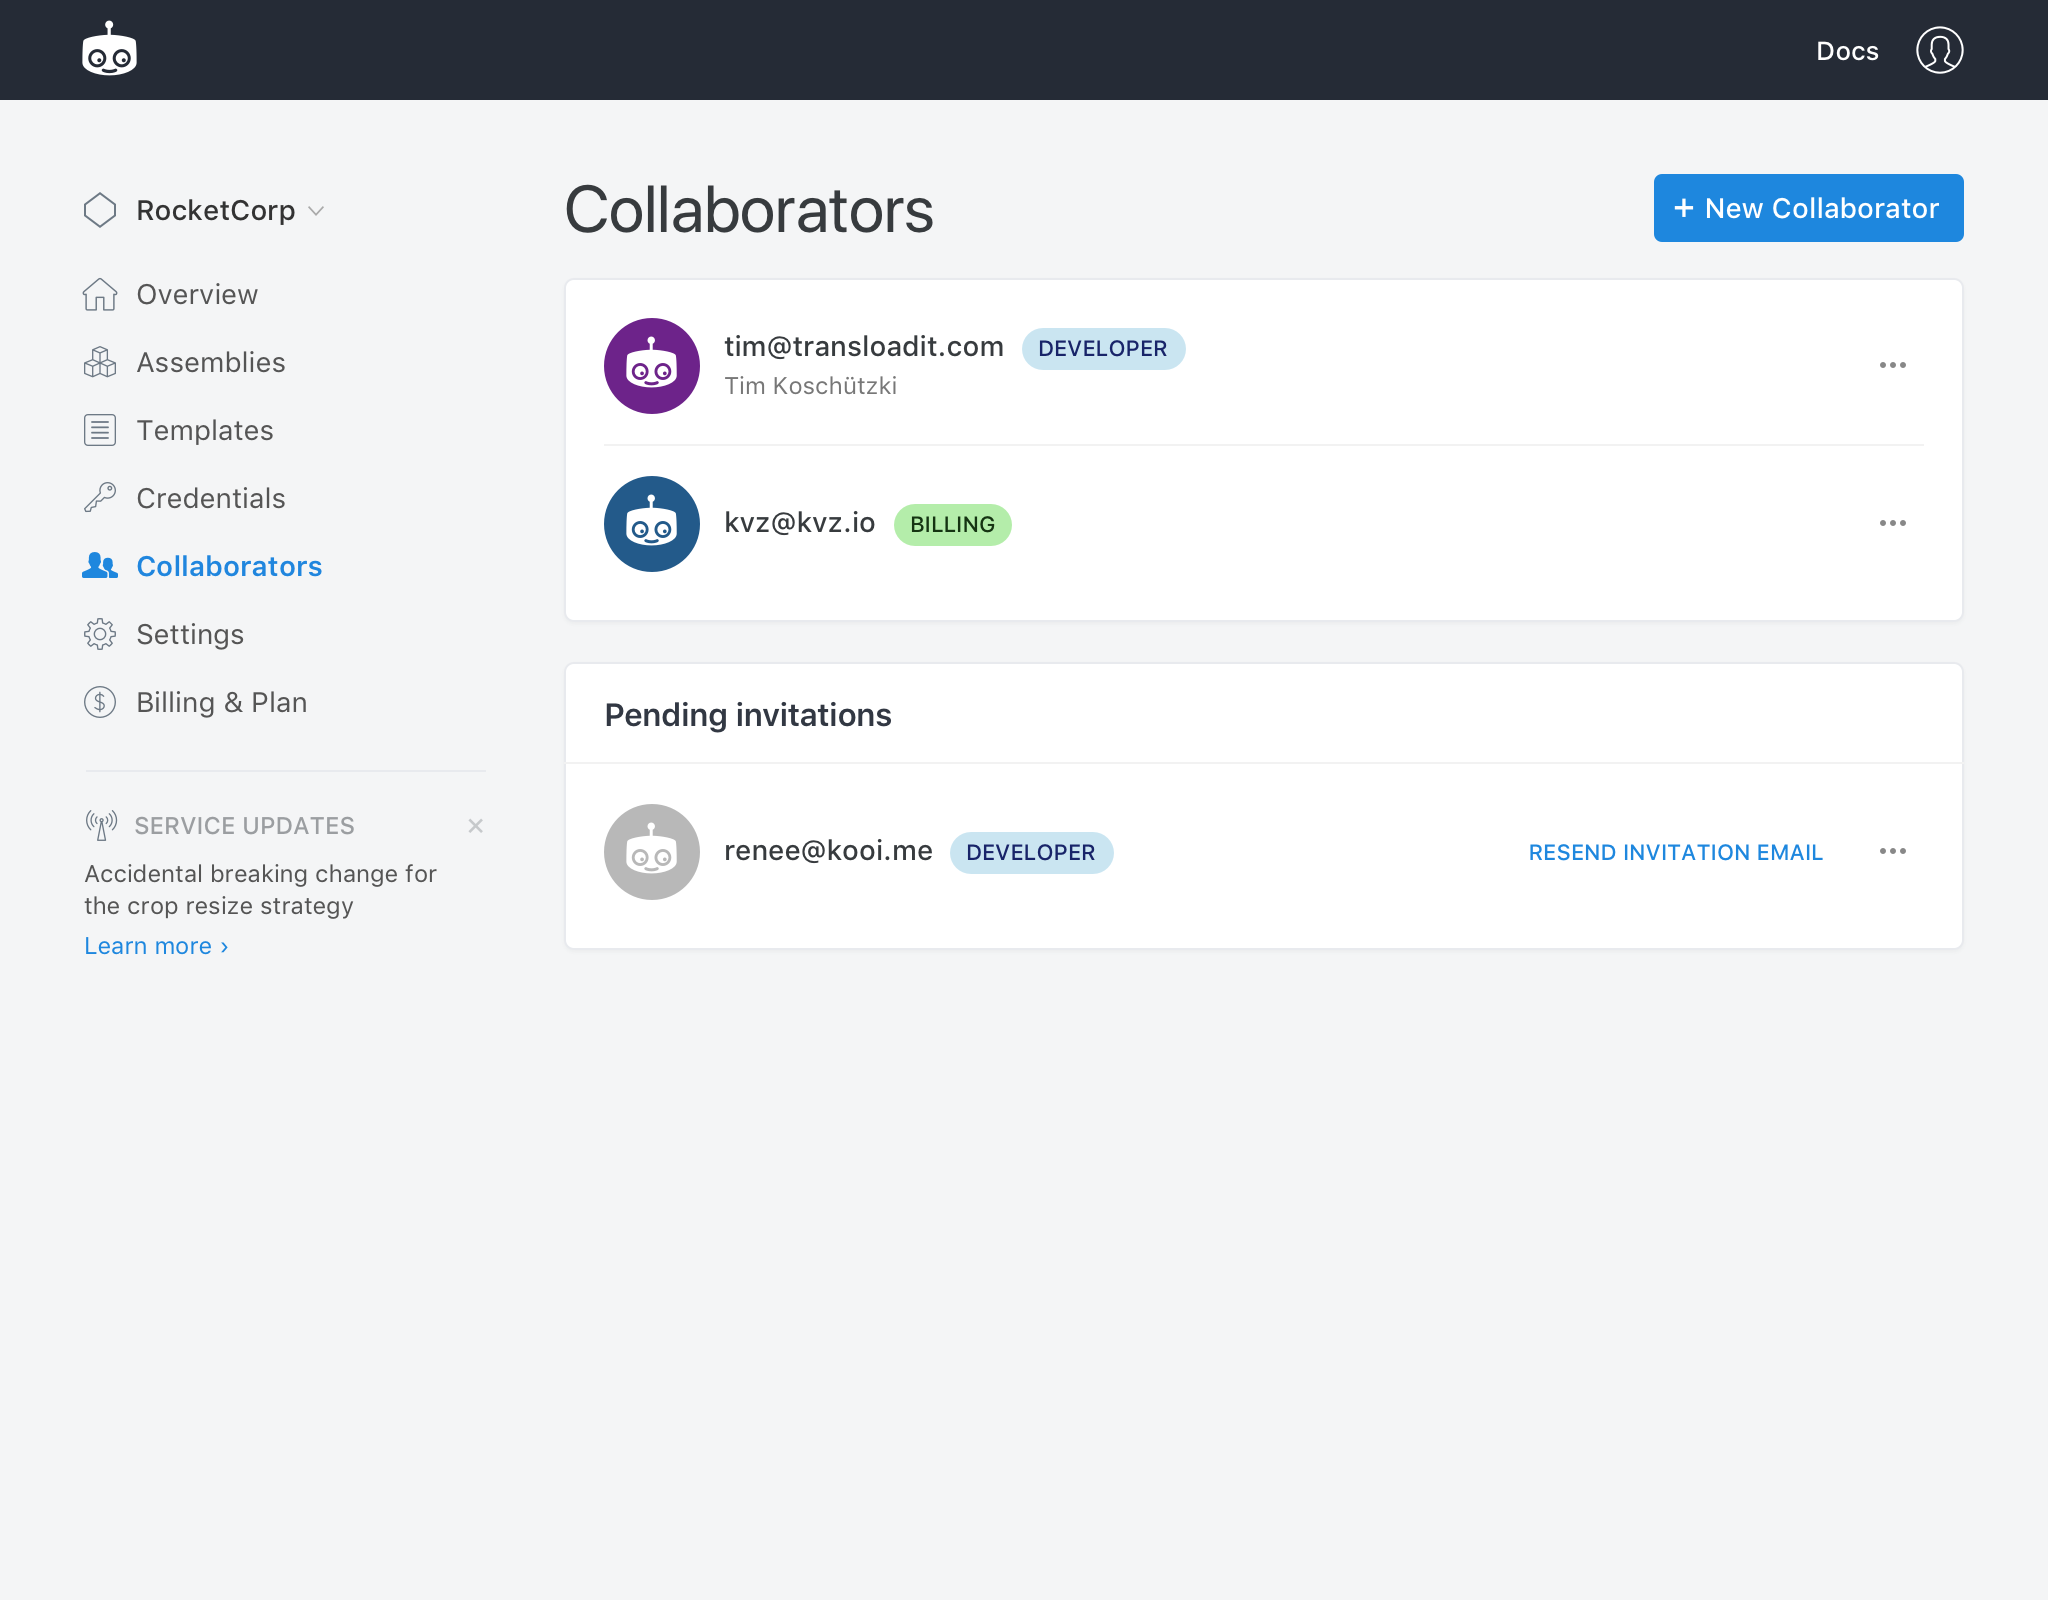 The new Collaborator feature